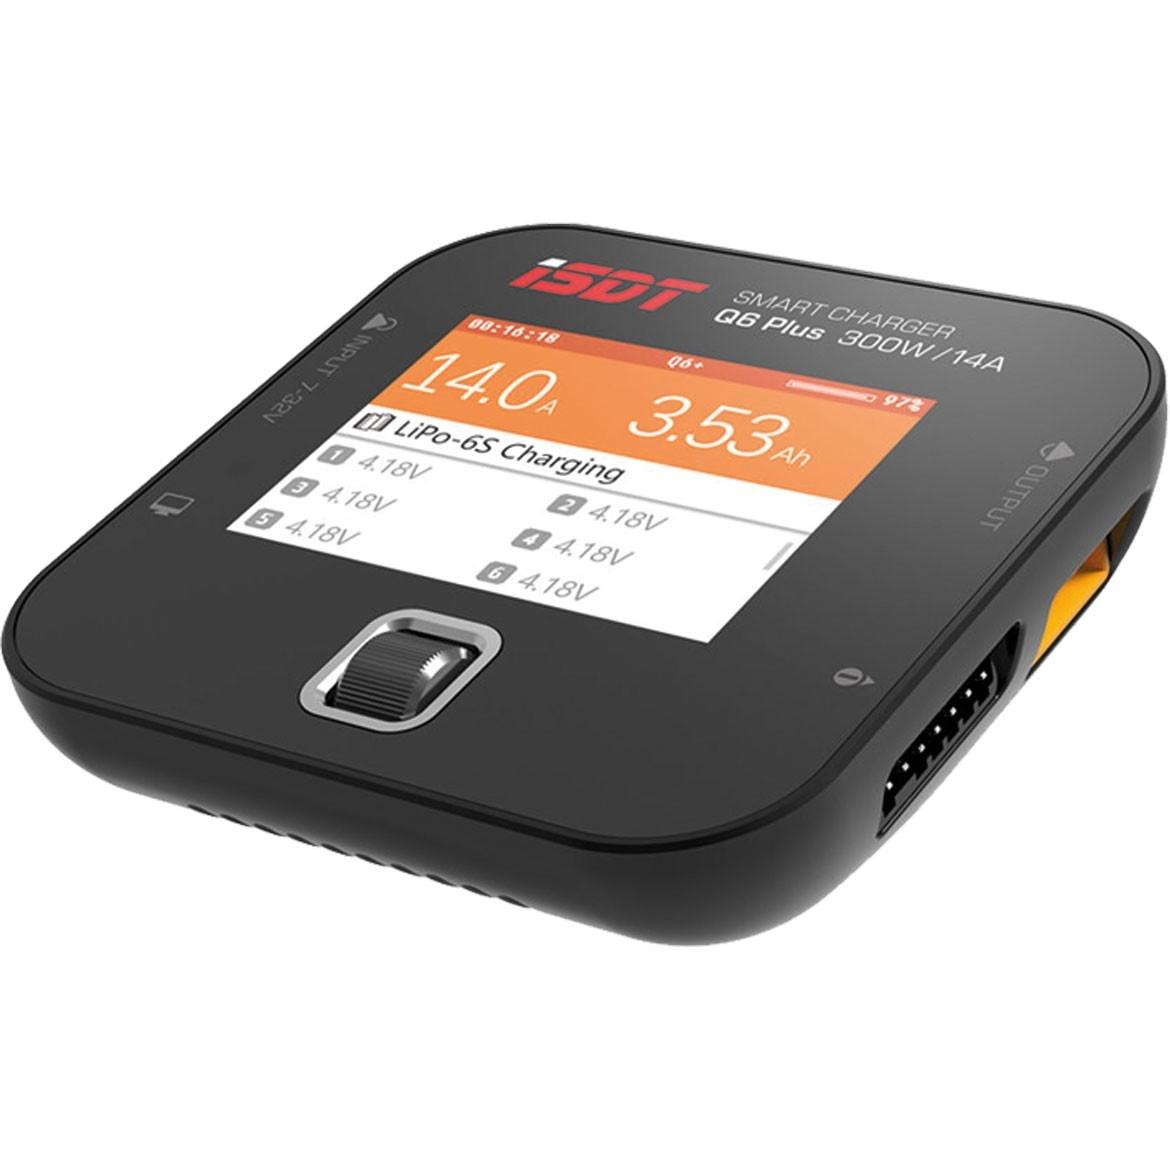 ISDT Q6 PLUS 300W 7-32V / 14A DC SMART CHARGER